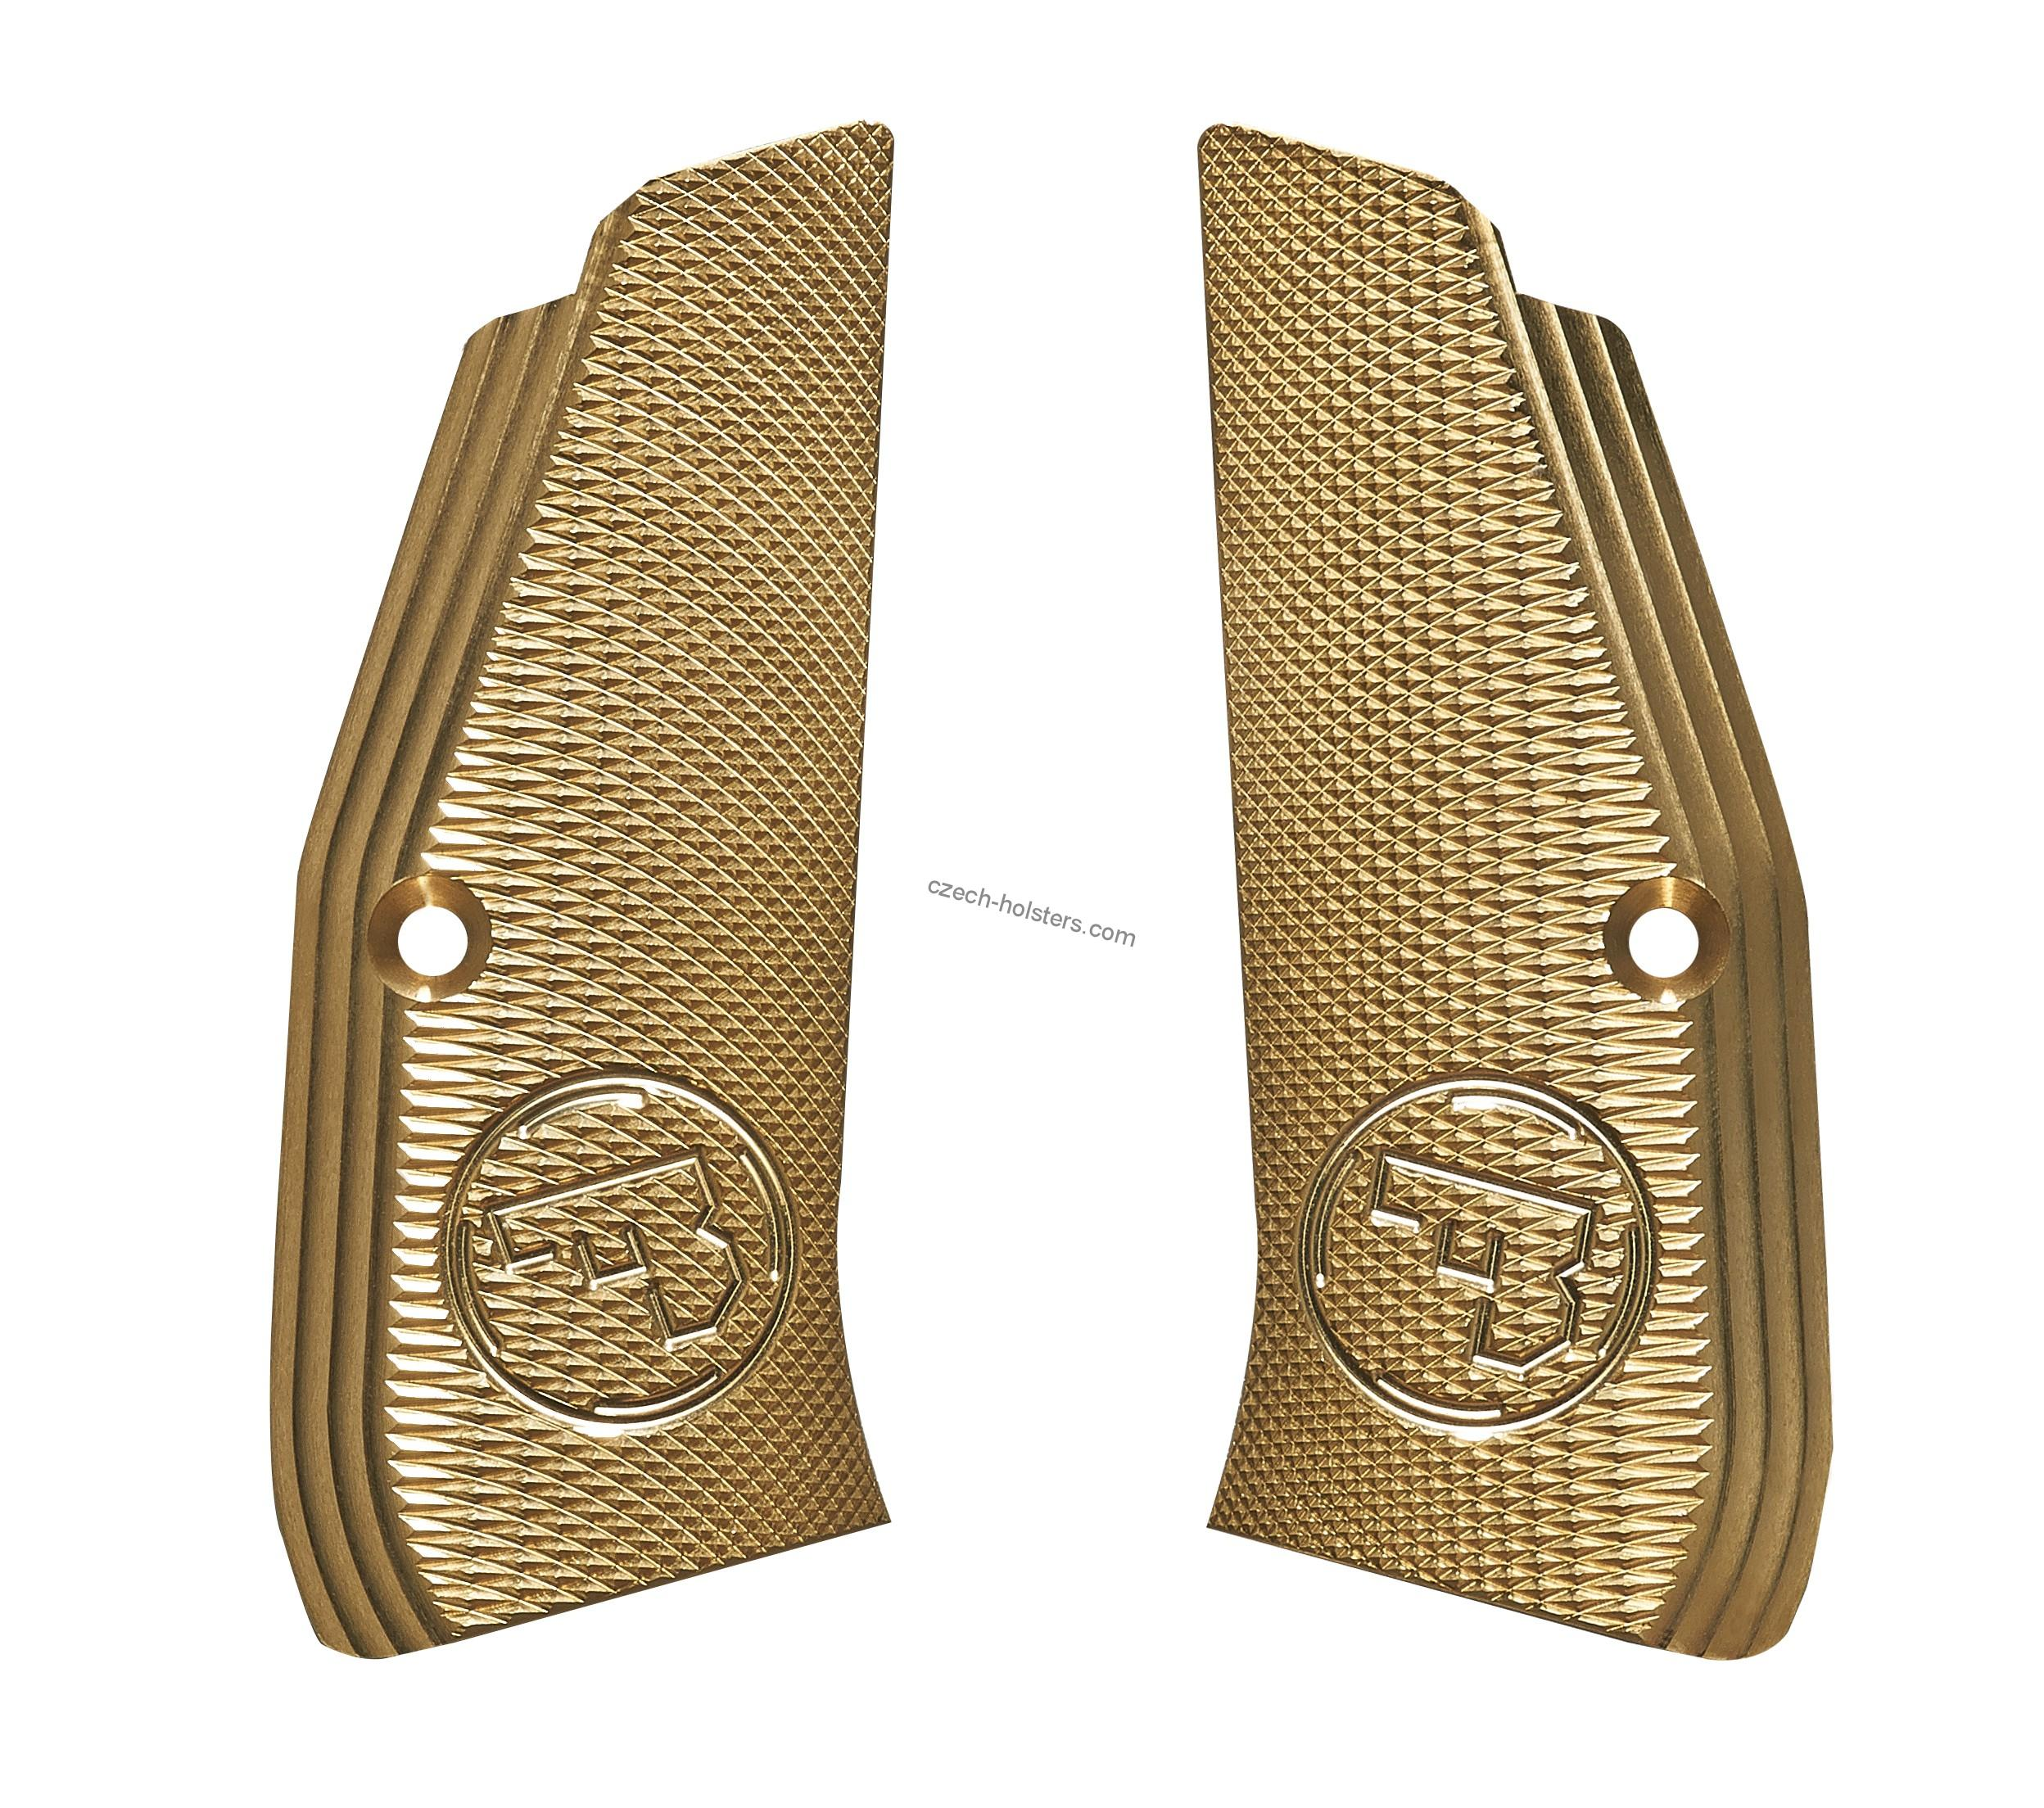 CZ 75 Brass Premium Grips without Funnel - Long - CZUB®